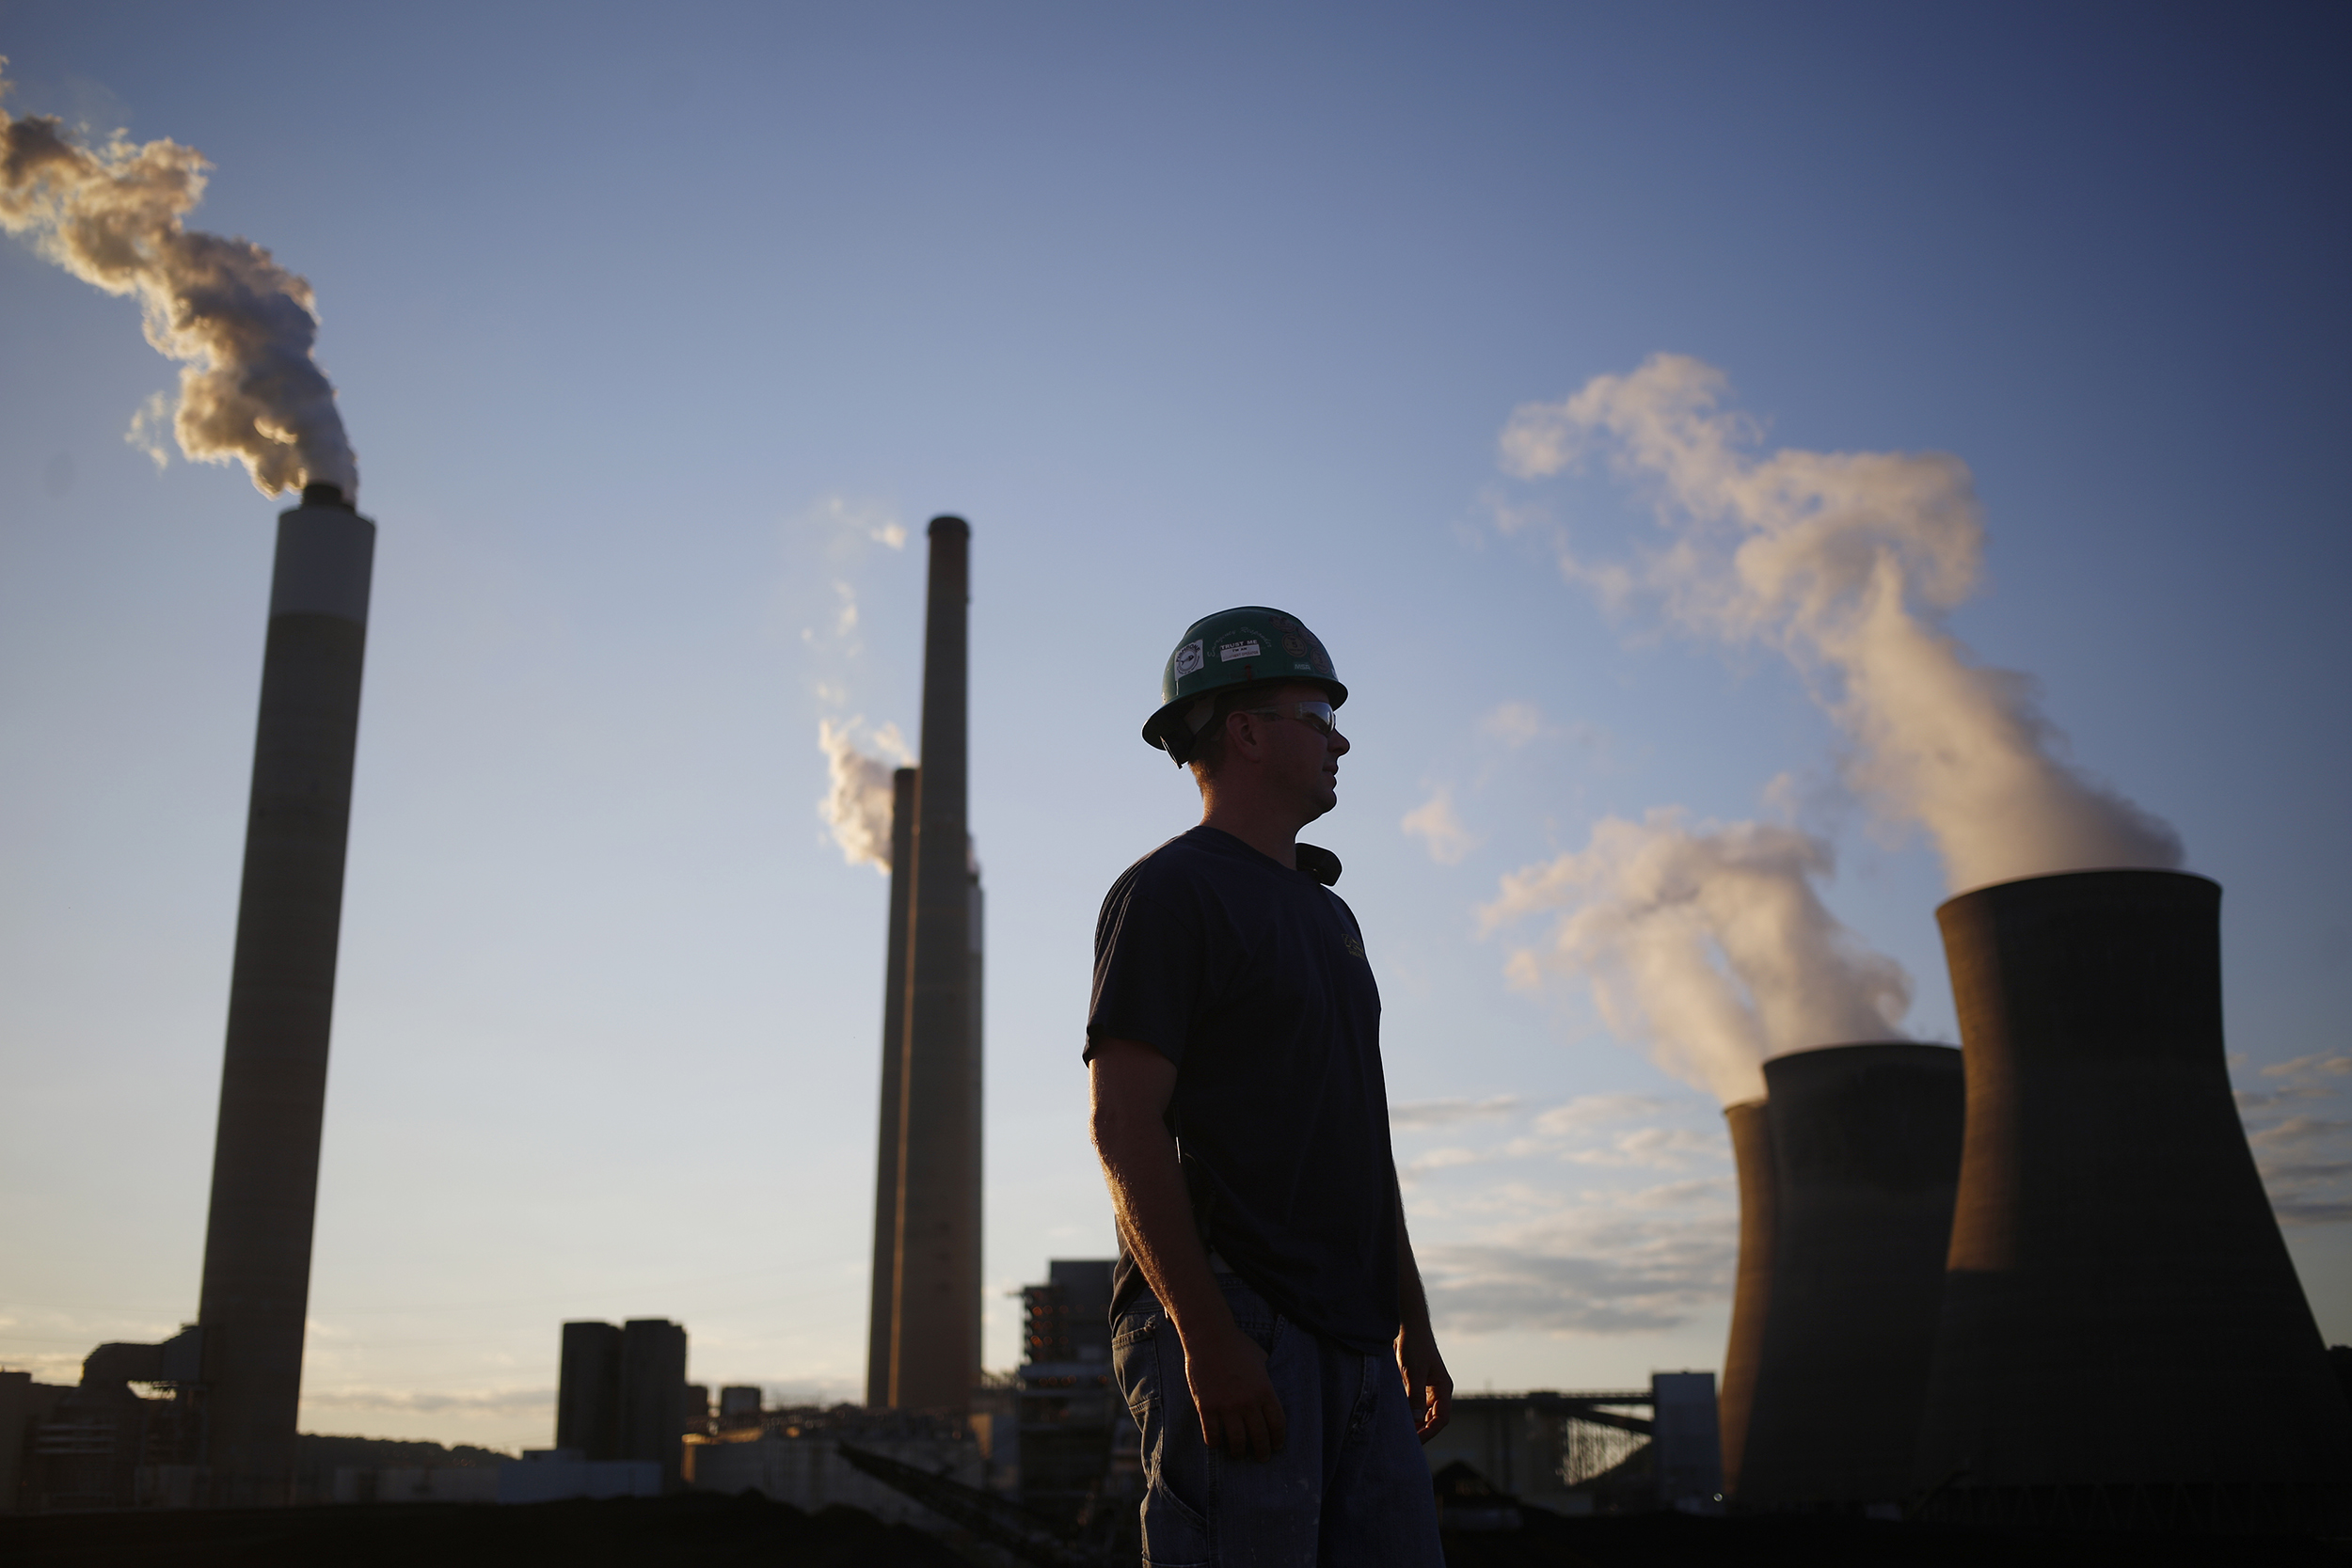 West Virginia's coal powered the nation for years. Now, many look to a cleaner future.